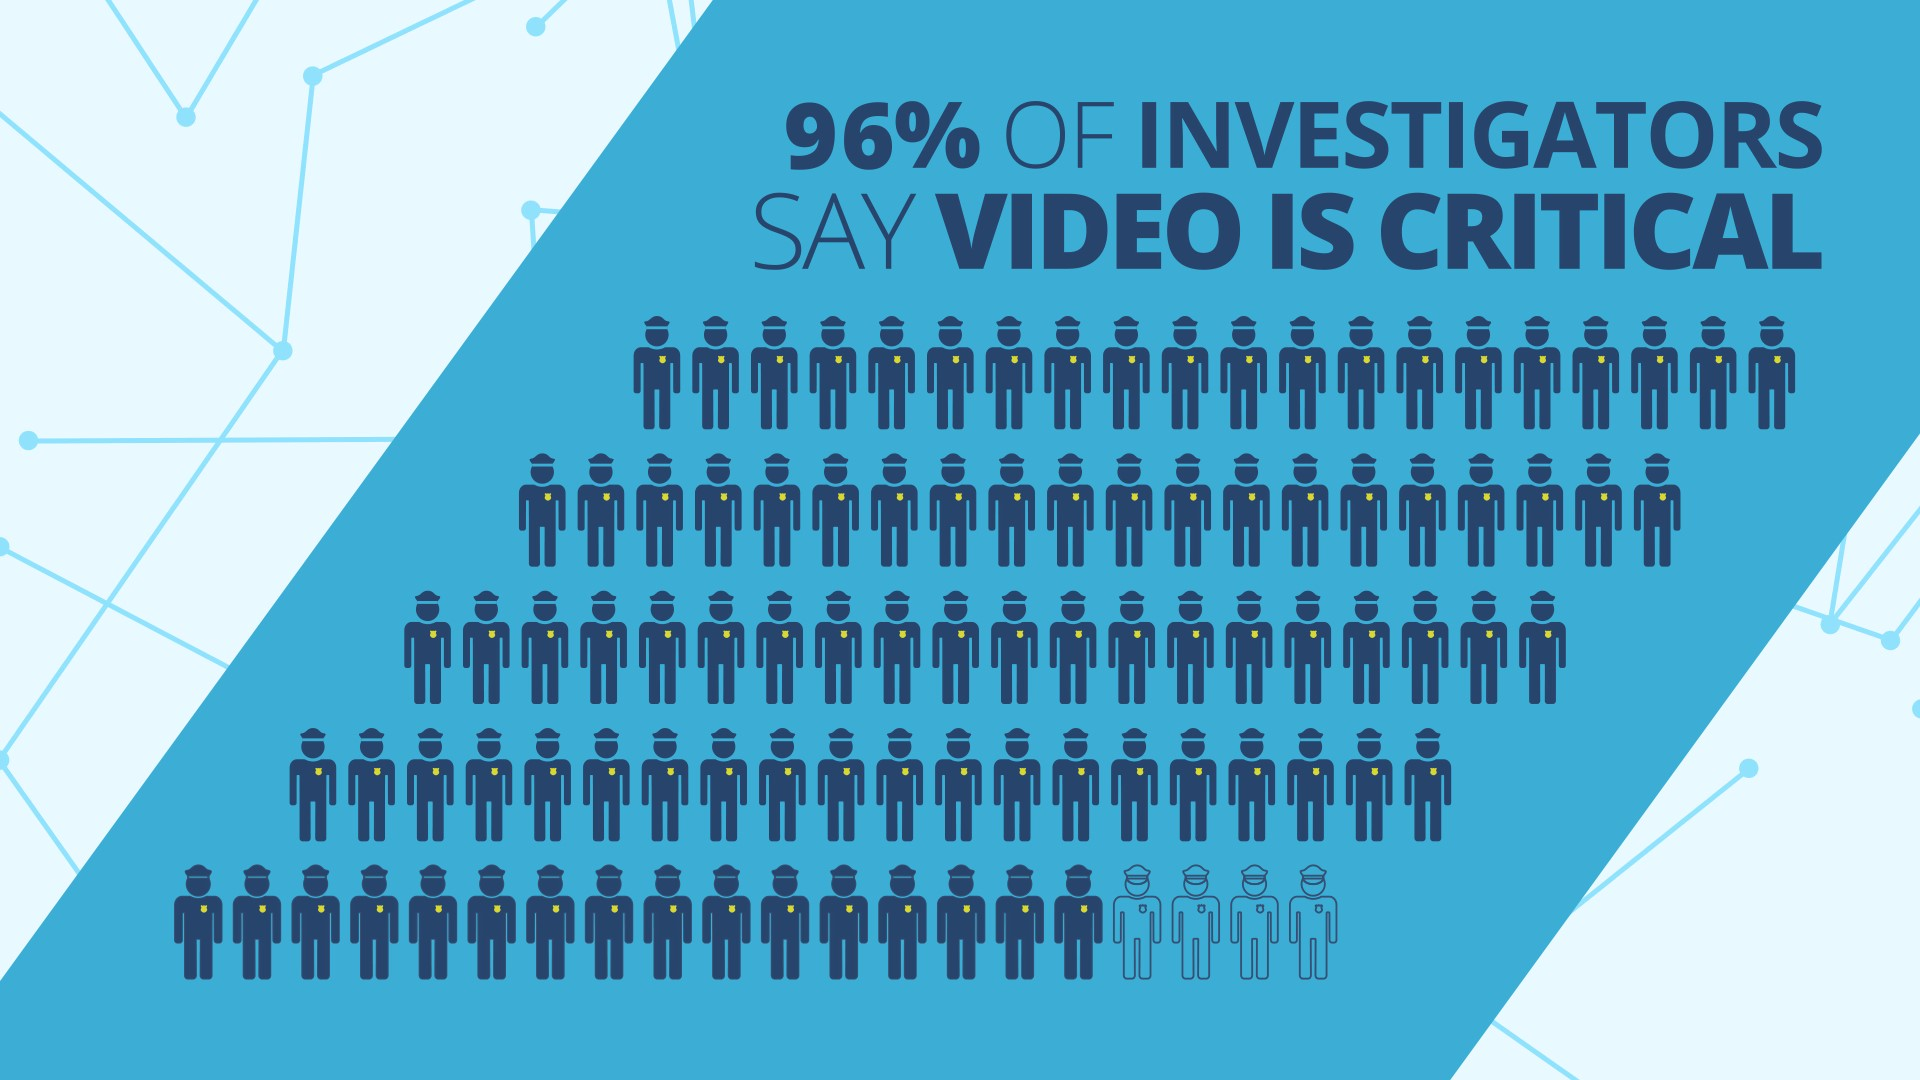 Video Evidence is Critical for Investigations